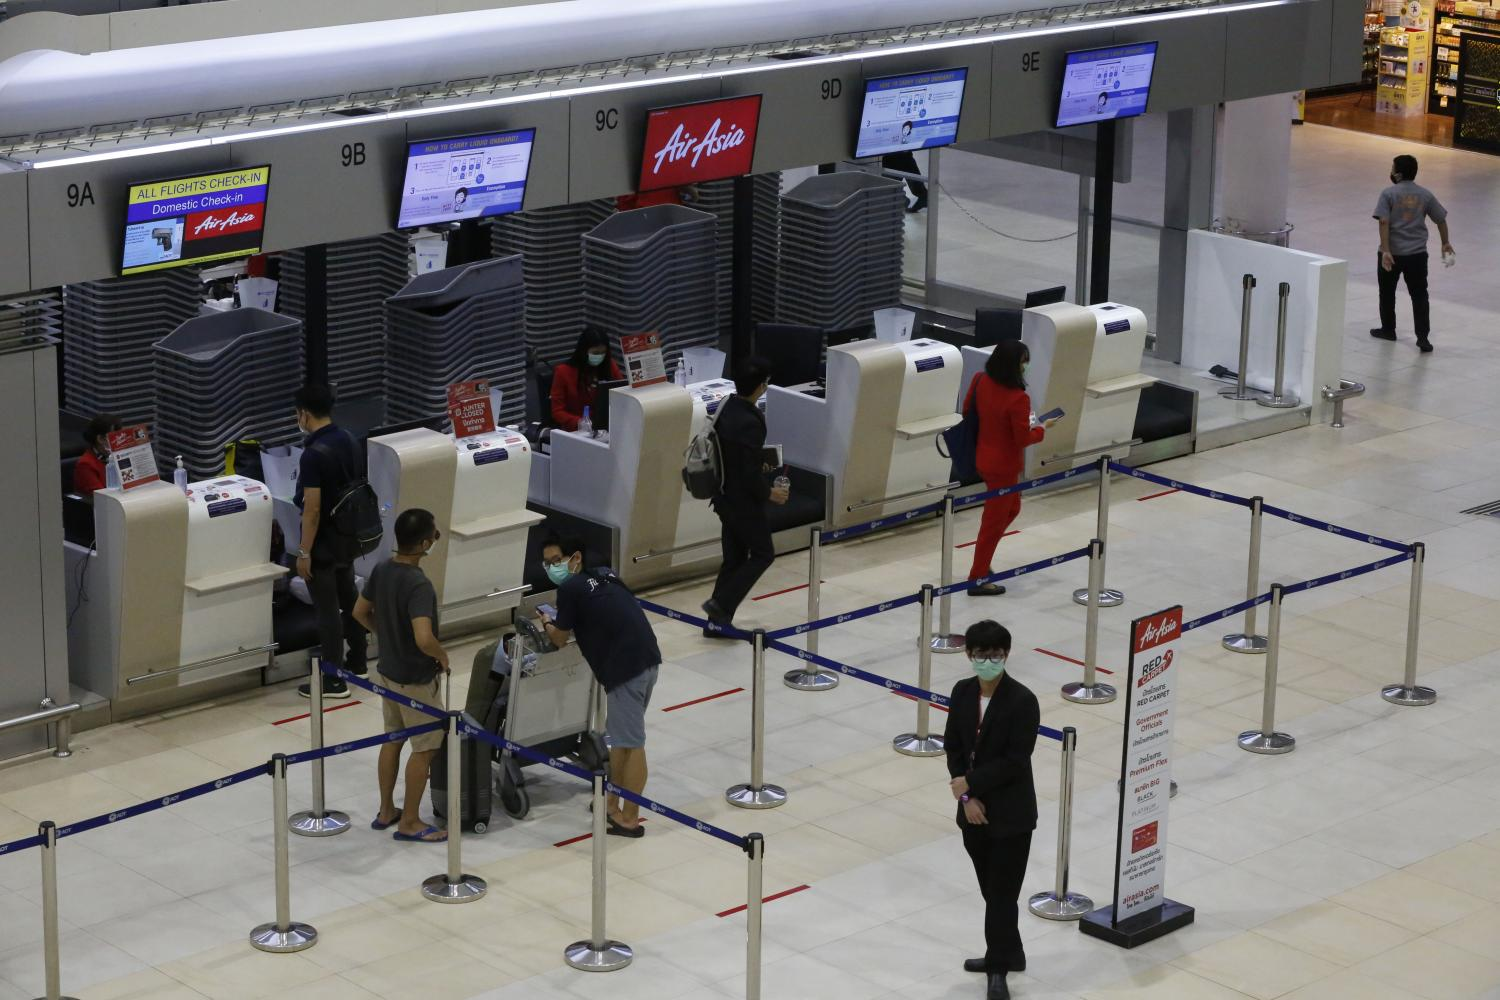 Local travellers at the check-in counter at Don Mueang airport. Tourism officials expect domestic travel to kick-start by June. (Photo by Pornprom Satrabhaya)